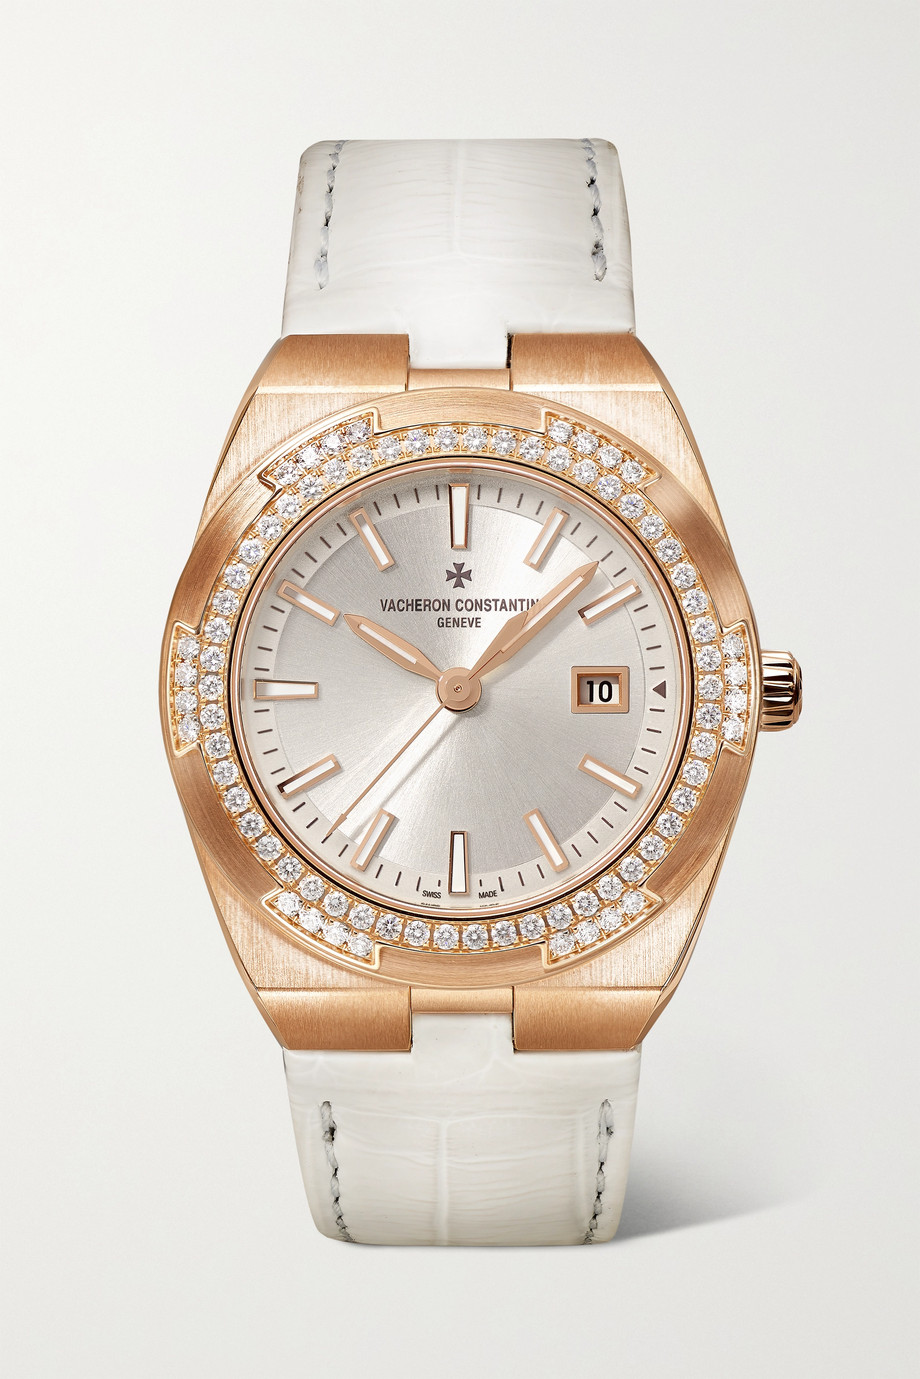 Vacheron Constantin Montre en or rose 18 carats et diamants à bracelet en alligator Overseas 33 mm